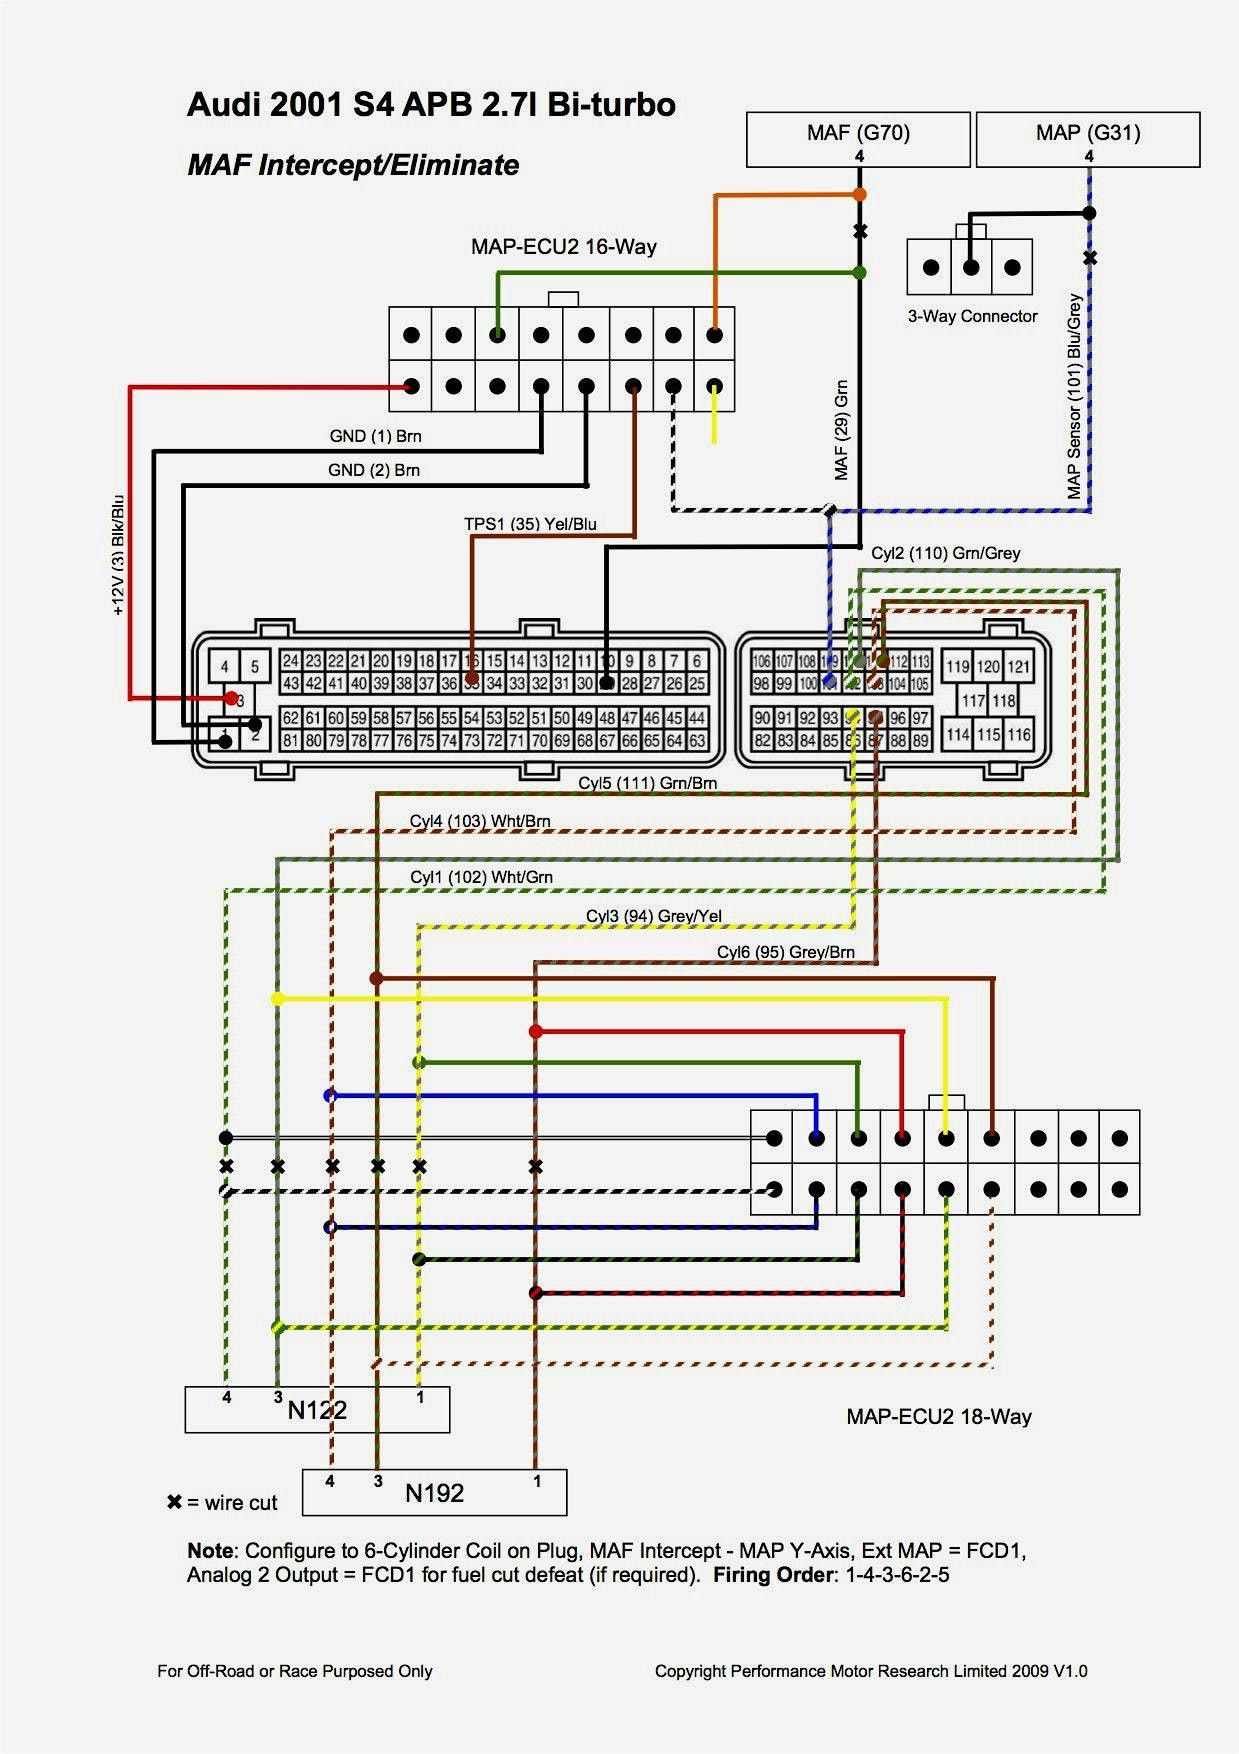 Radio Wiring Diagram Jetta 2002 - 2009 Ford Fuse Box for Wiring Diagram  SchematicsWiring Diagram Schematics